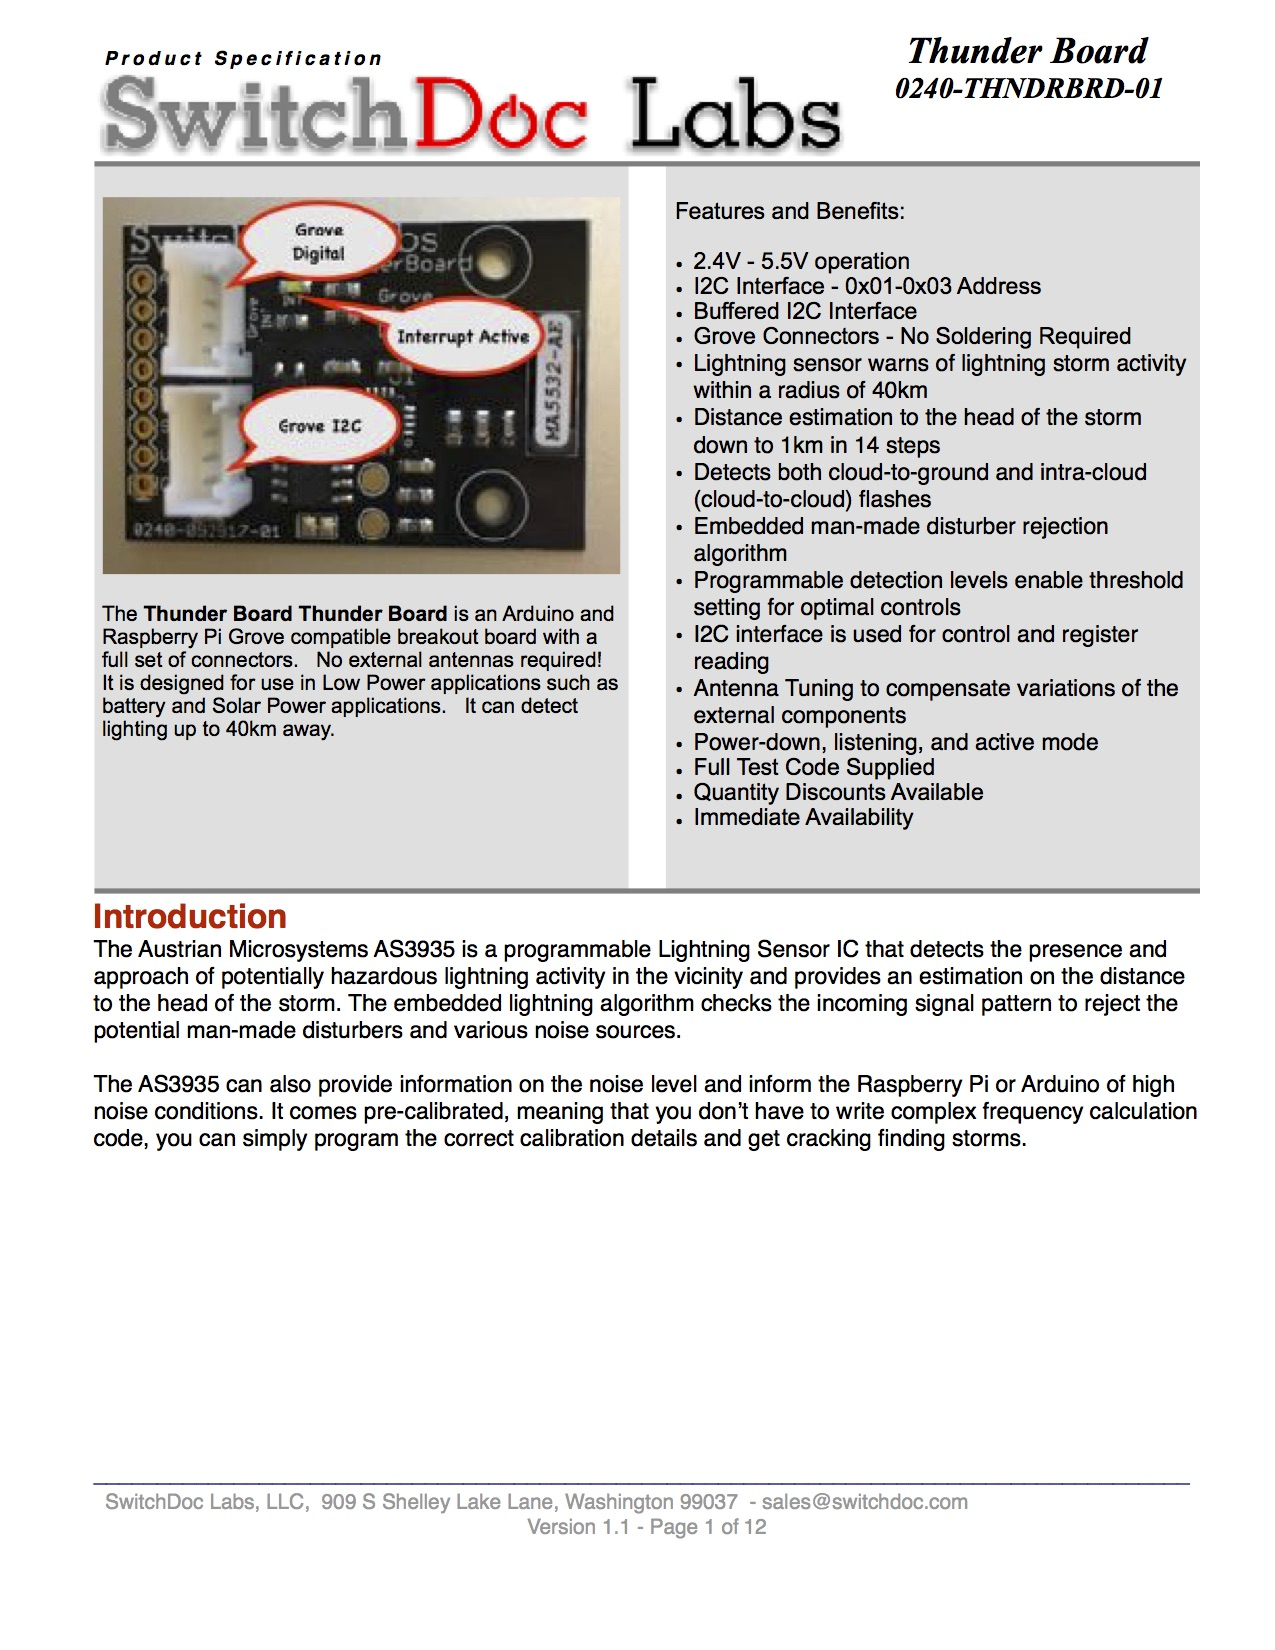 Thunder Board Lightning Detector Specification Released Switchdoc Labs Storm Circuit